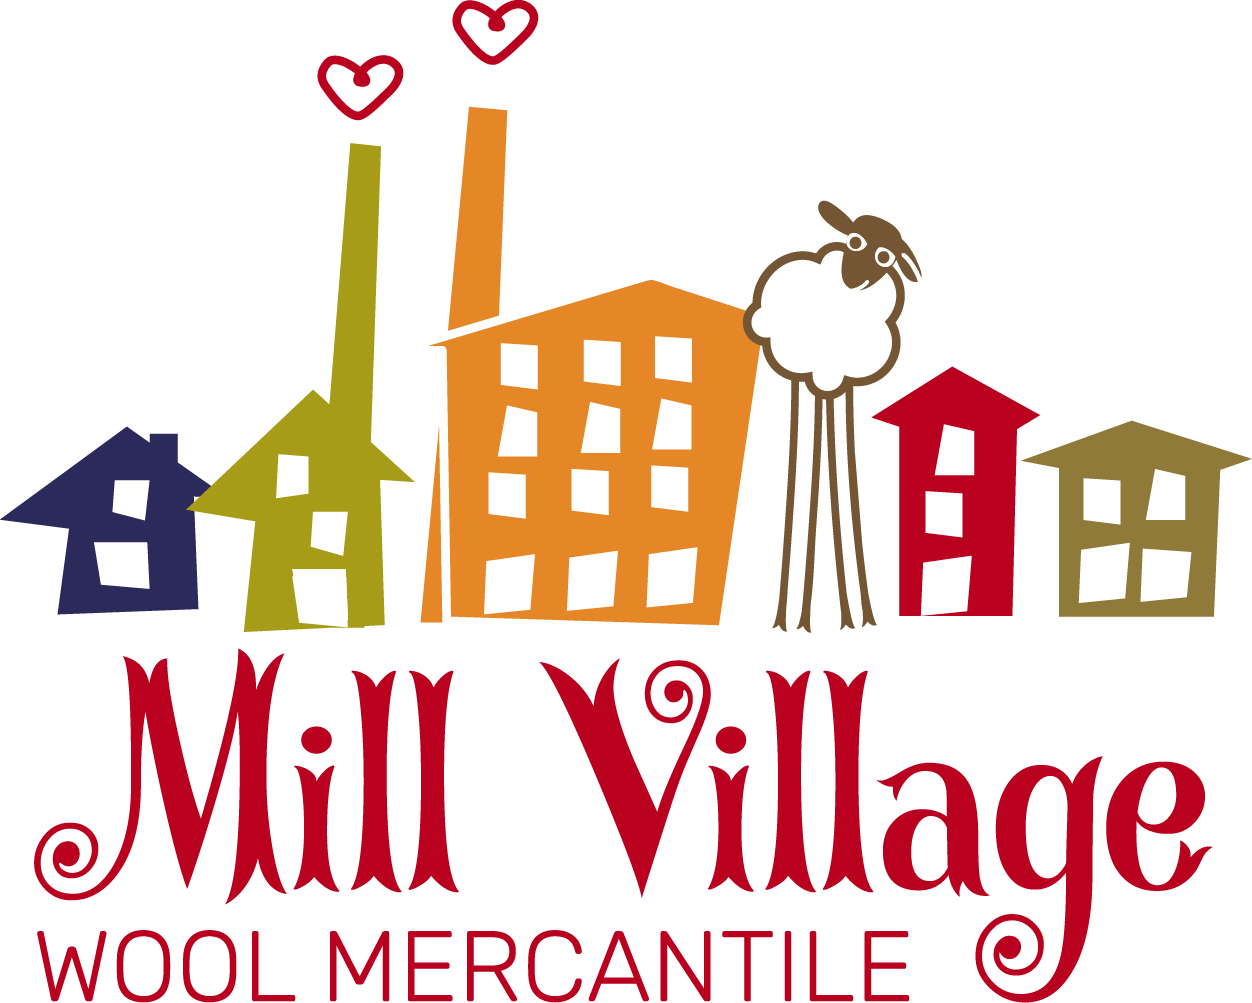 Mill Village Wool Mercantile